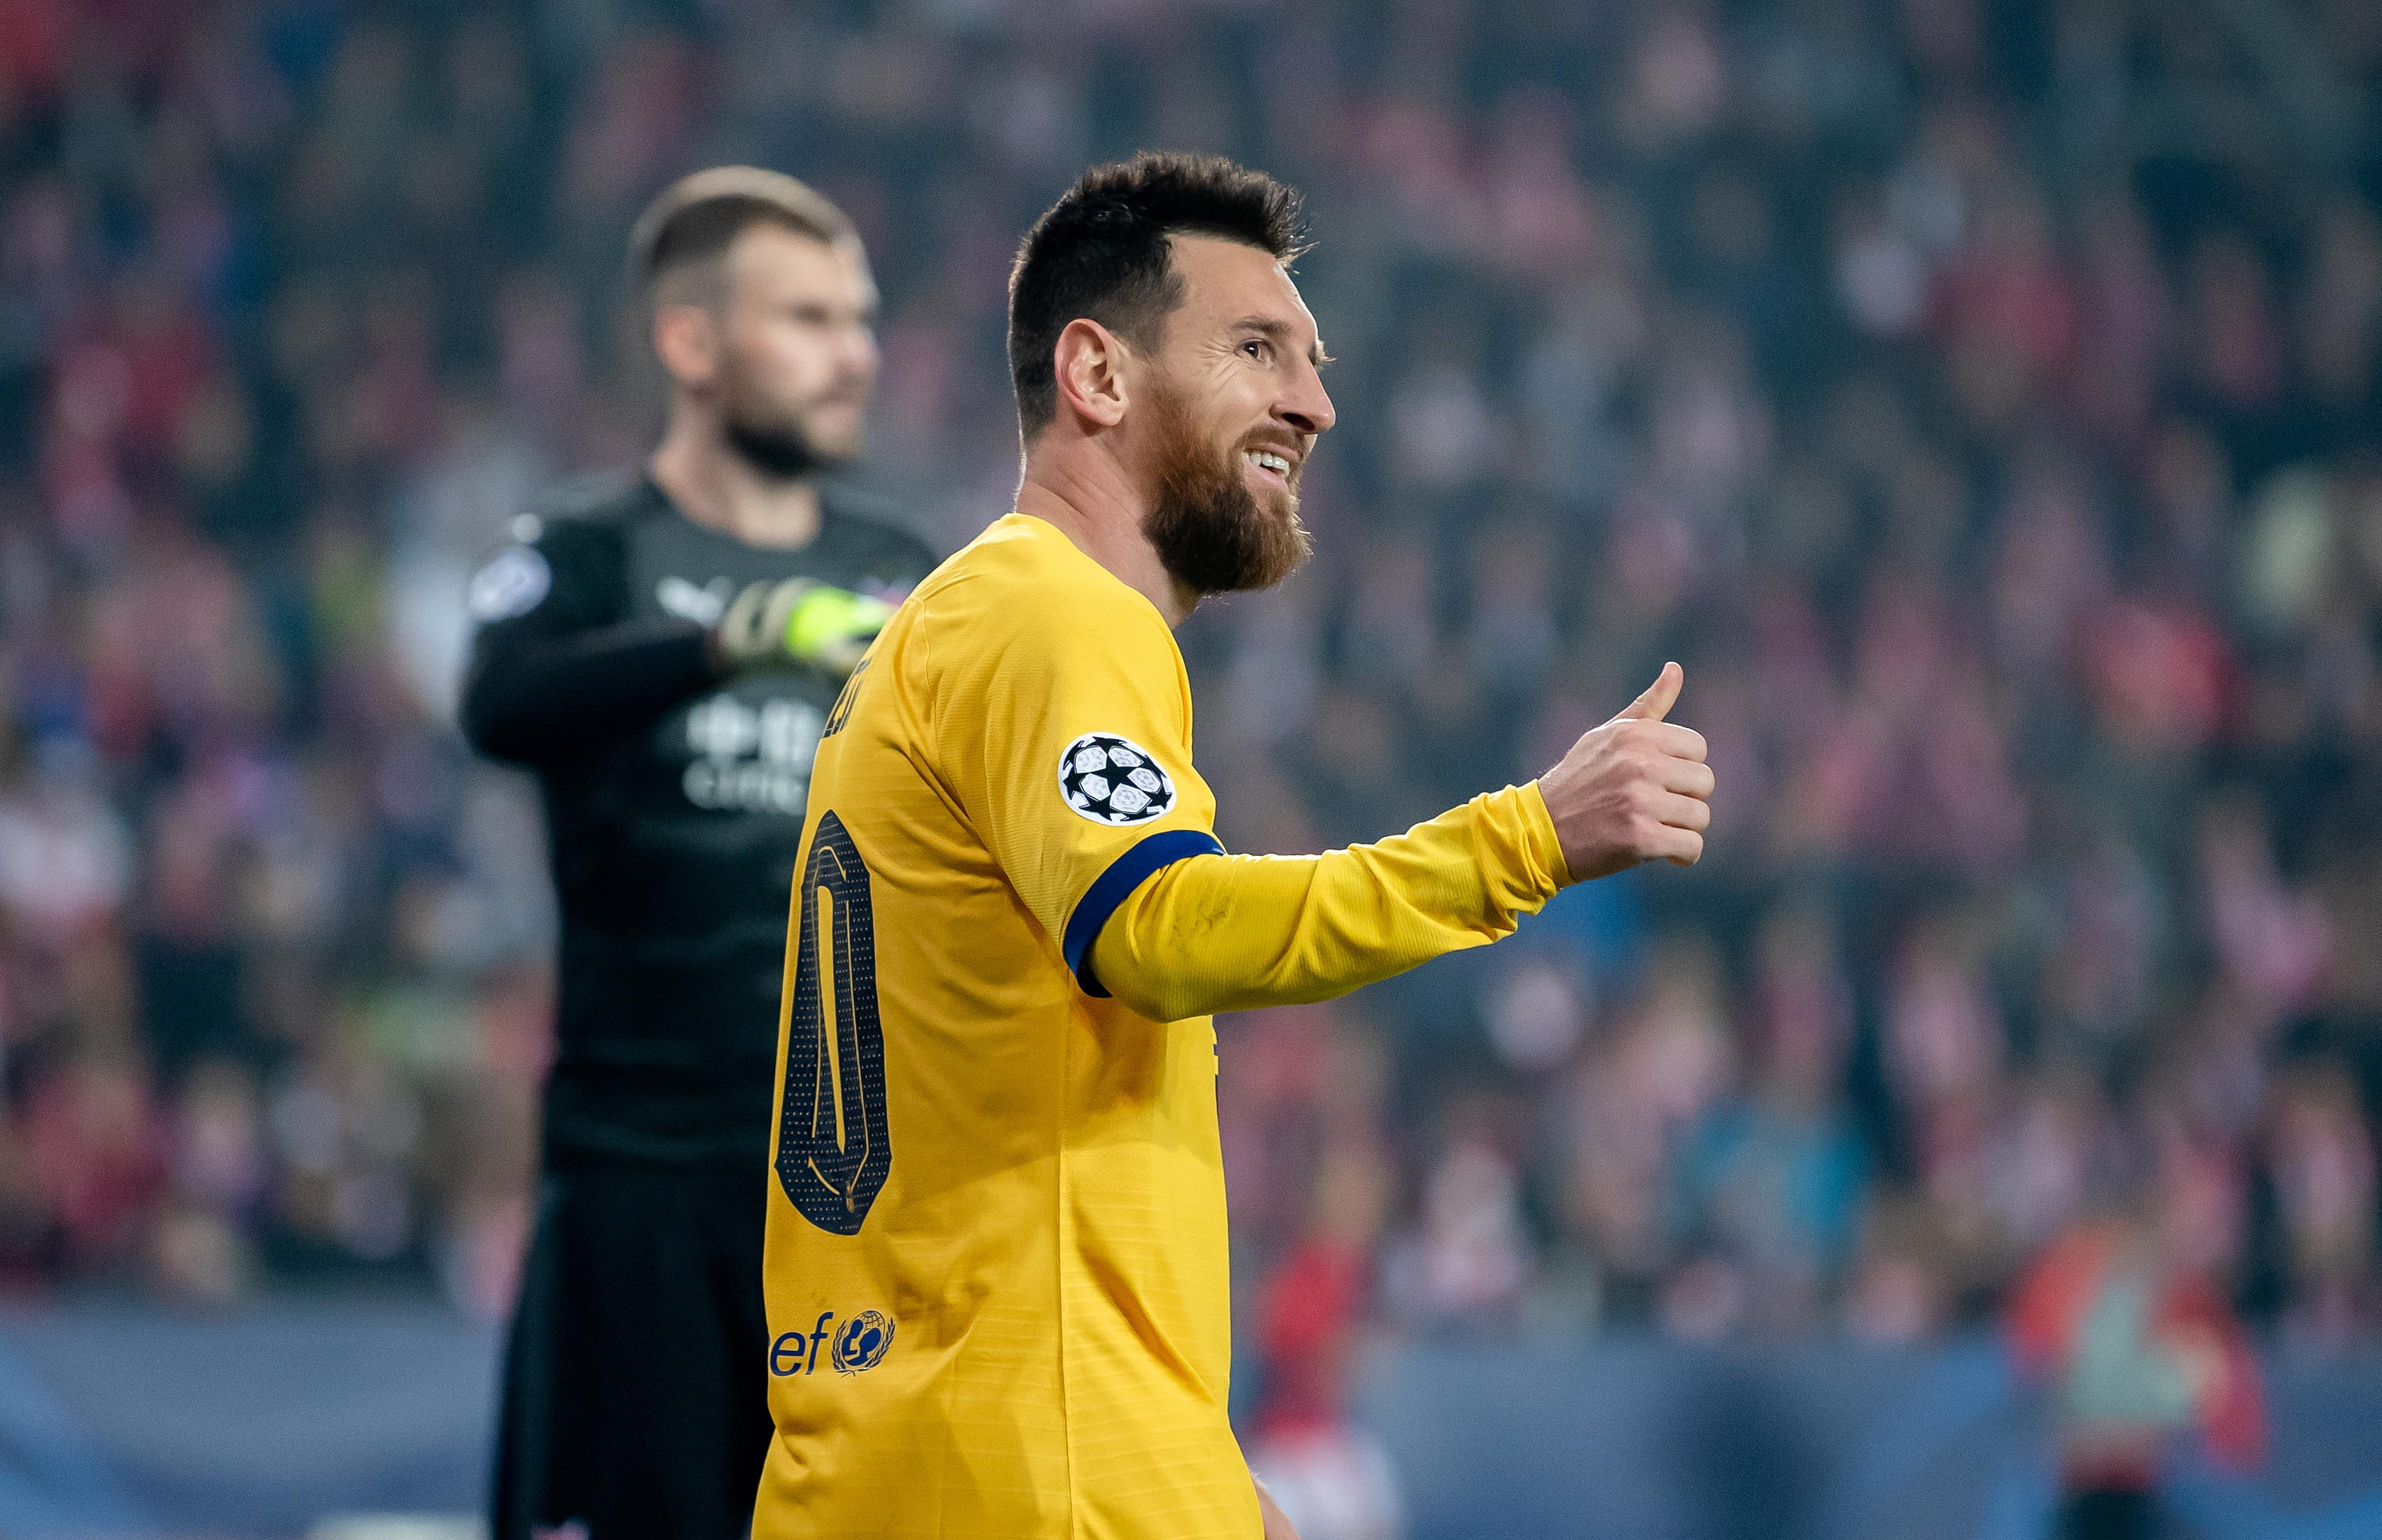 messi s historic goal helps barcelona edge slavia prague